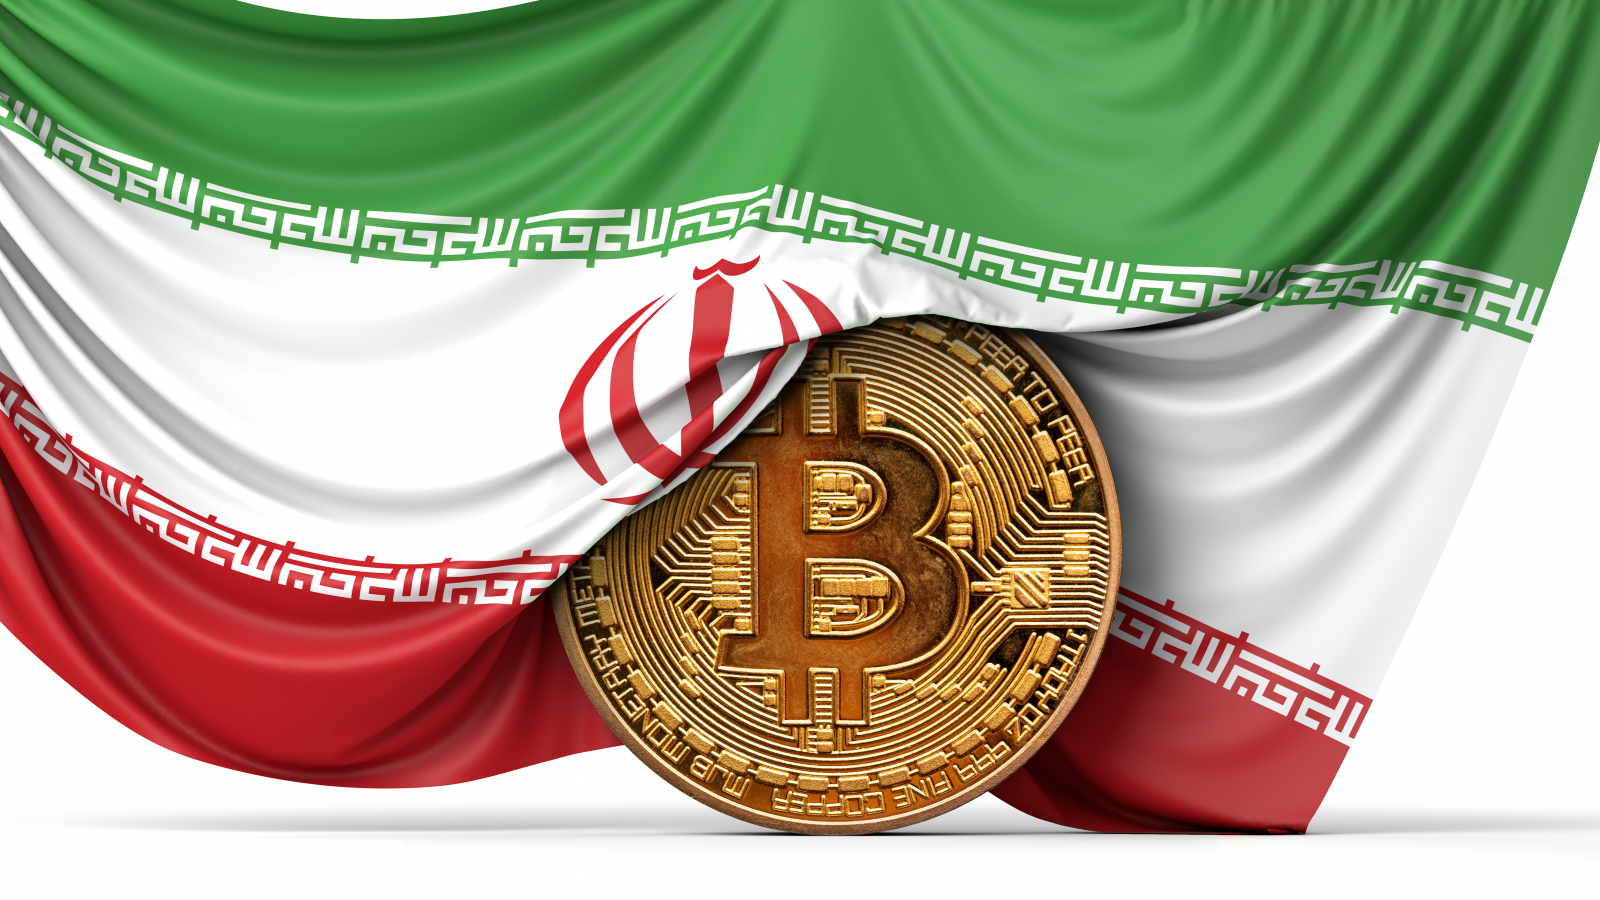 Media: Iran lifts restrictions on cryptocurrency mining